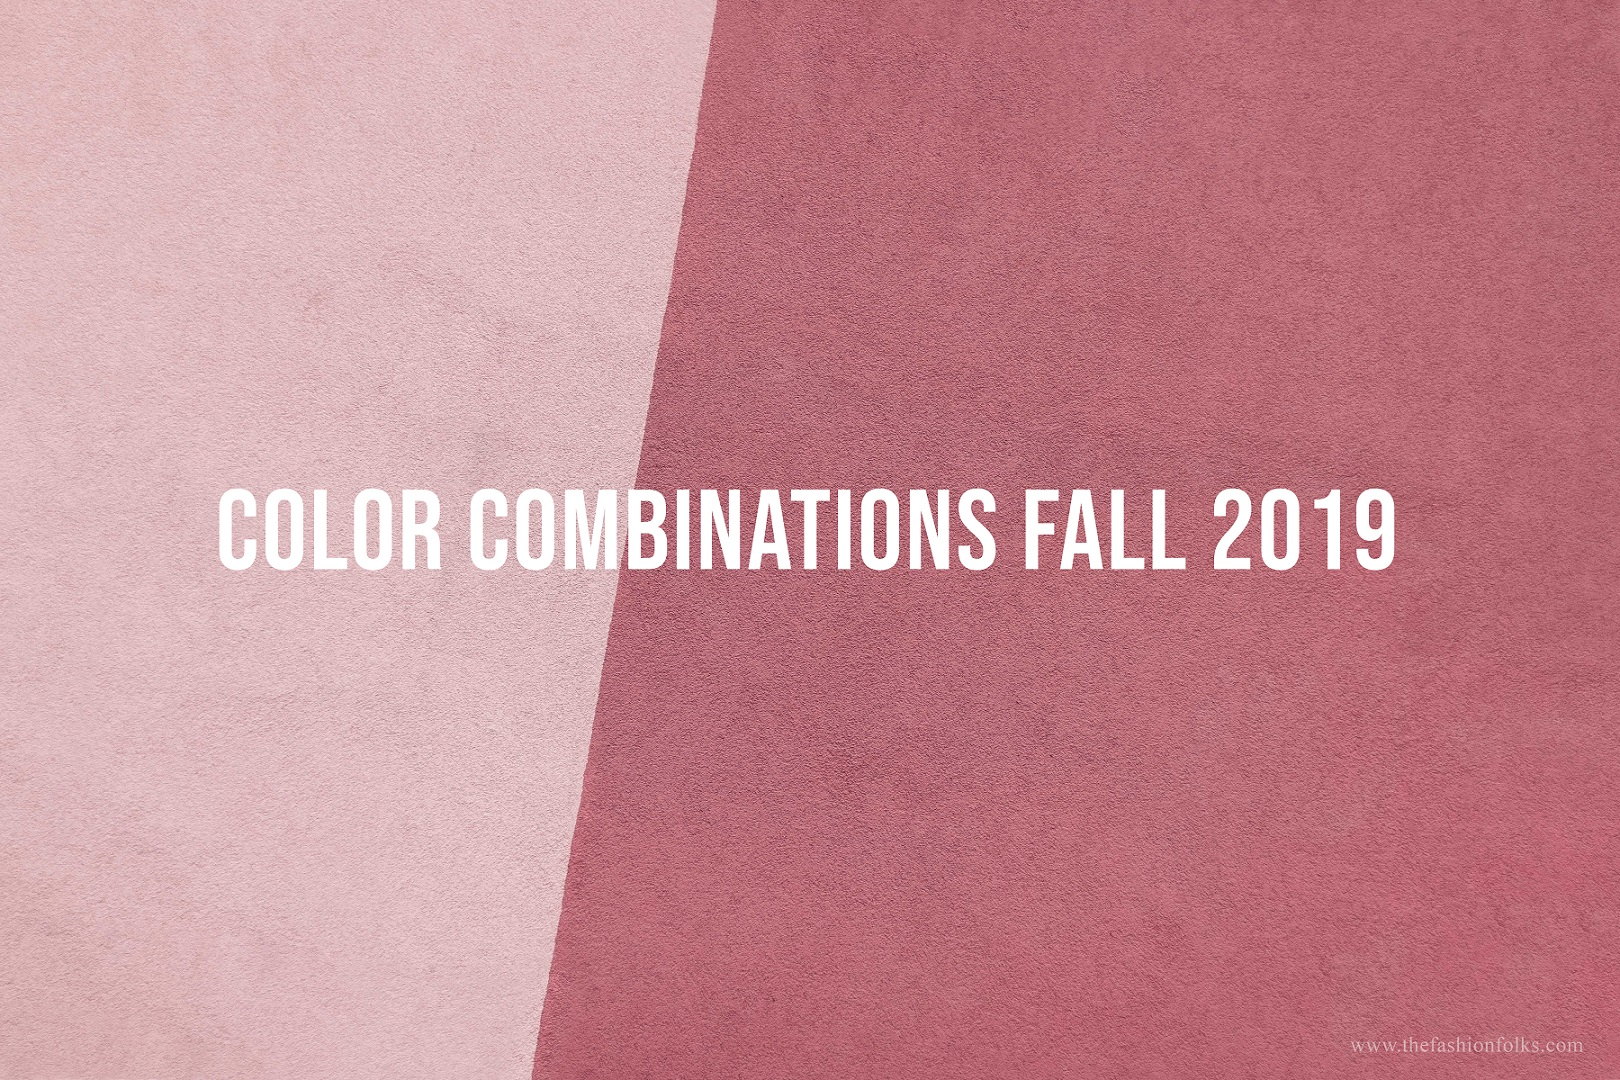 Color Combinations Fall 2019